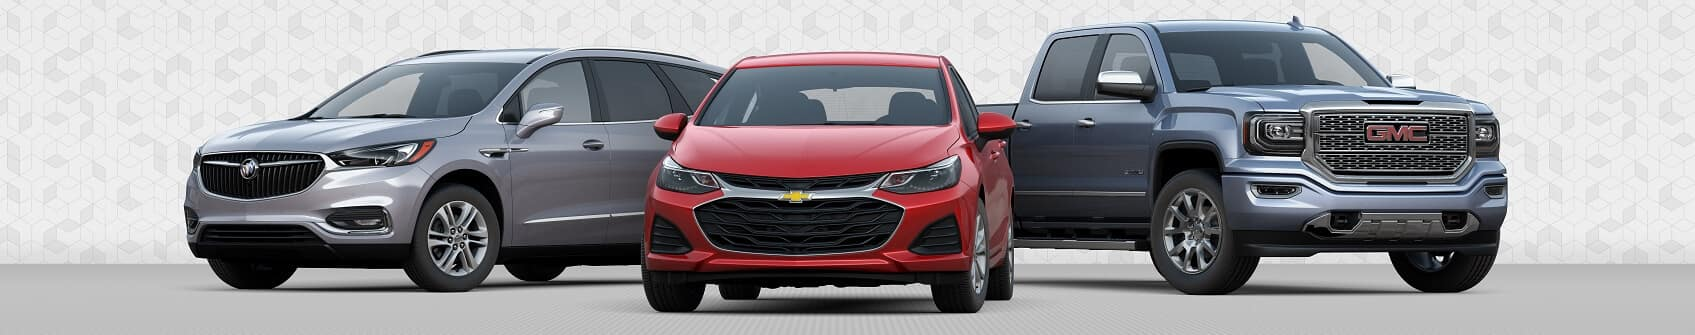 CHEVY CRUZE VS FORD FOCUS